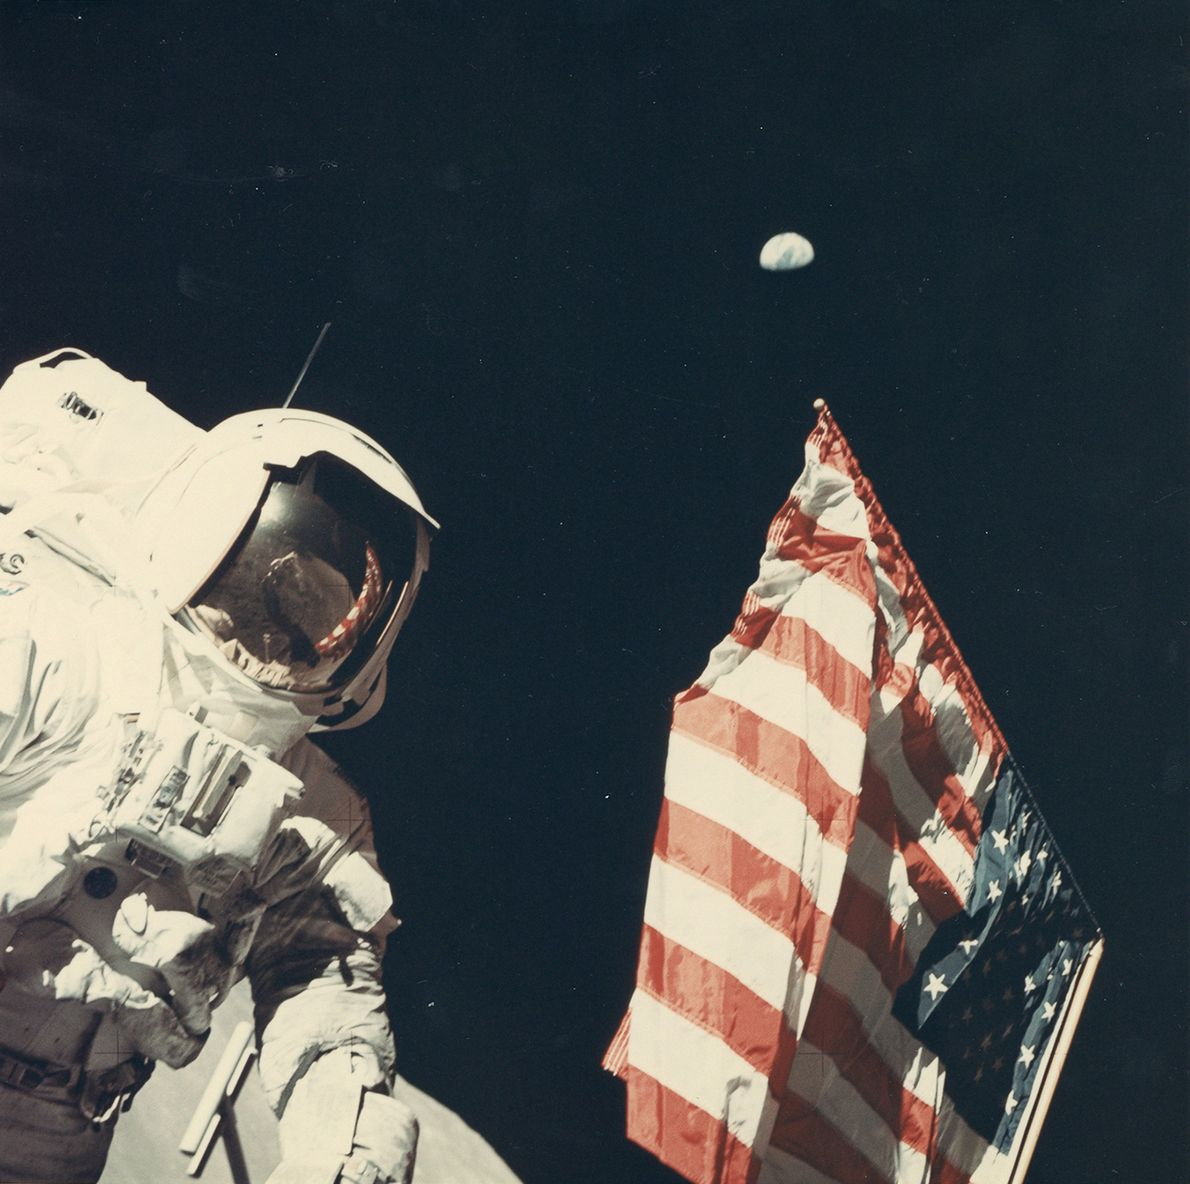 """I captured the Earth, the moon, the man, and the country [the United States] all in ..."